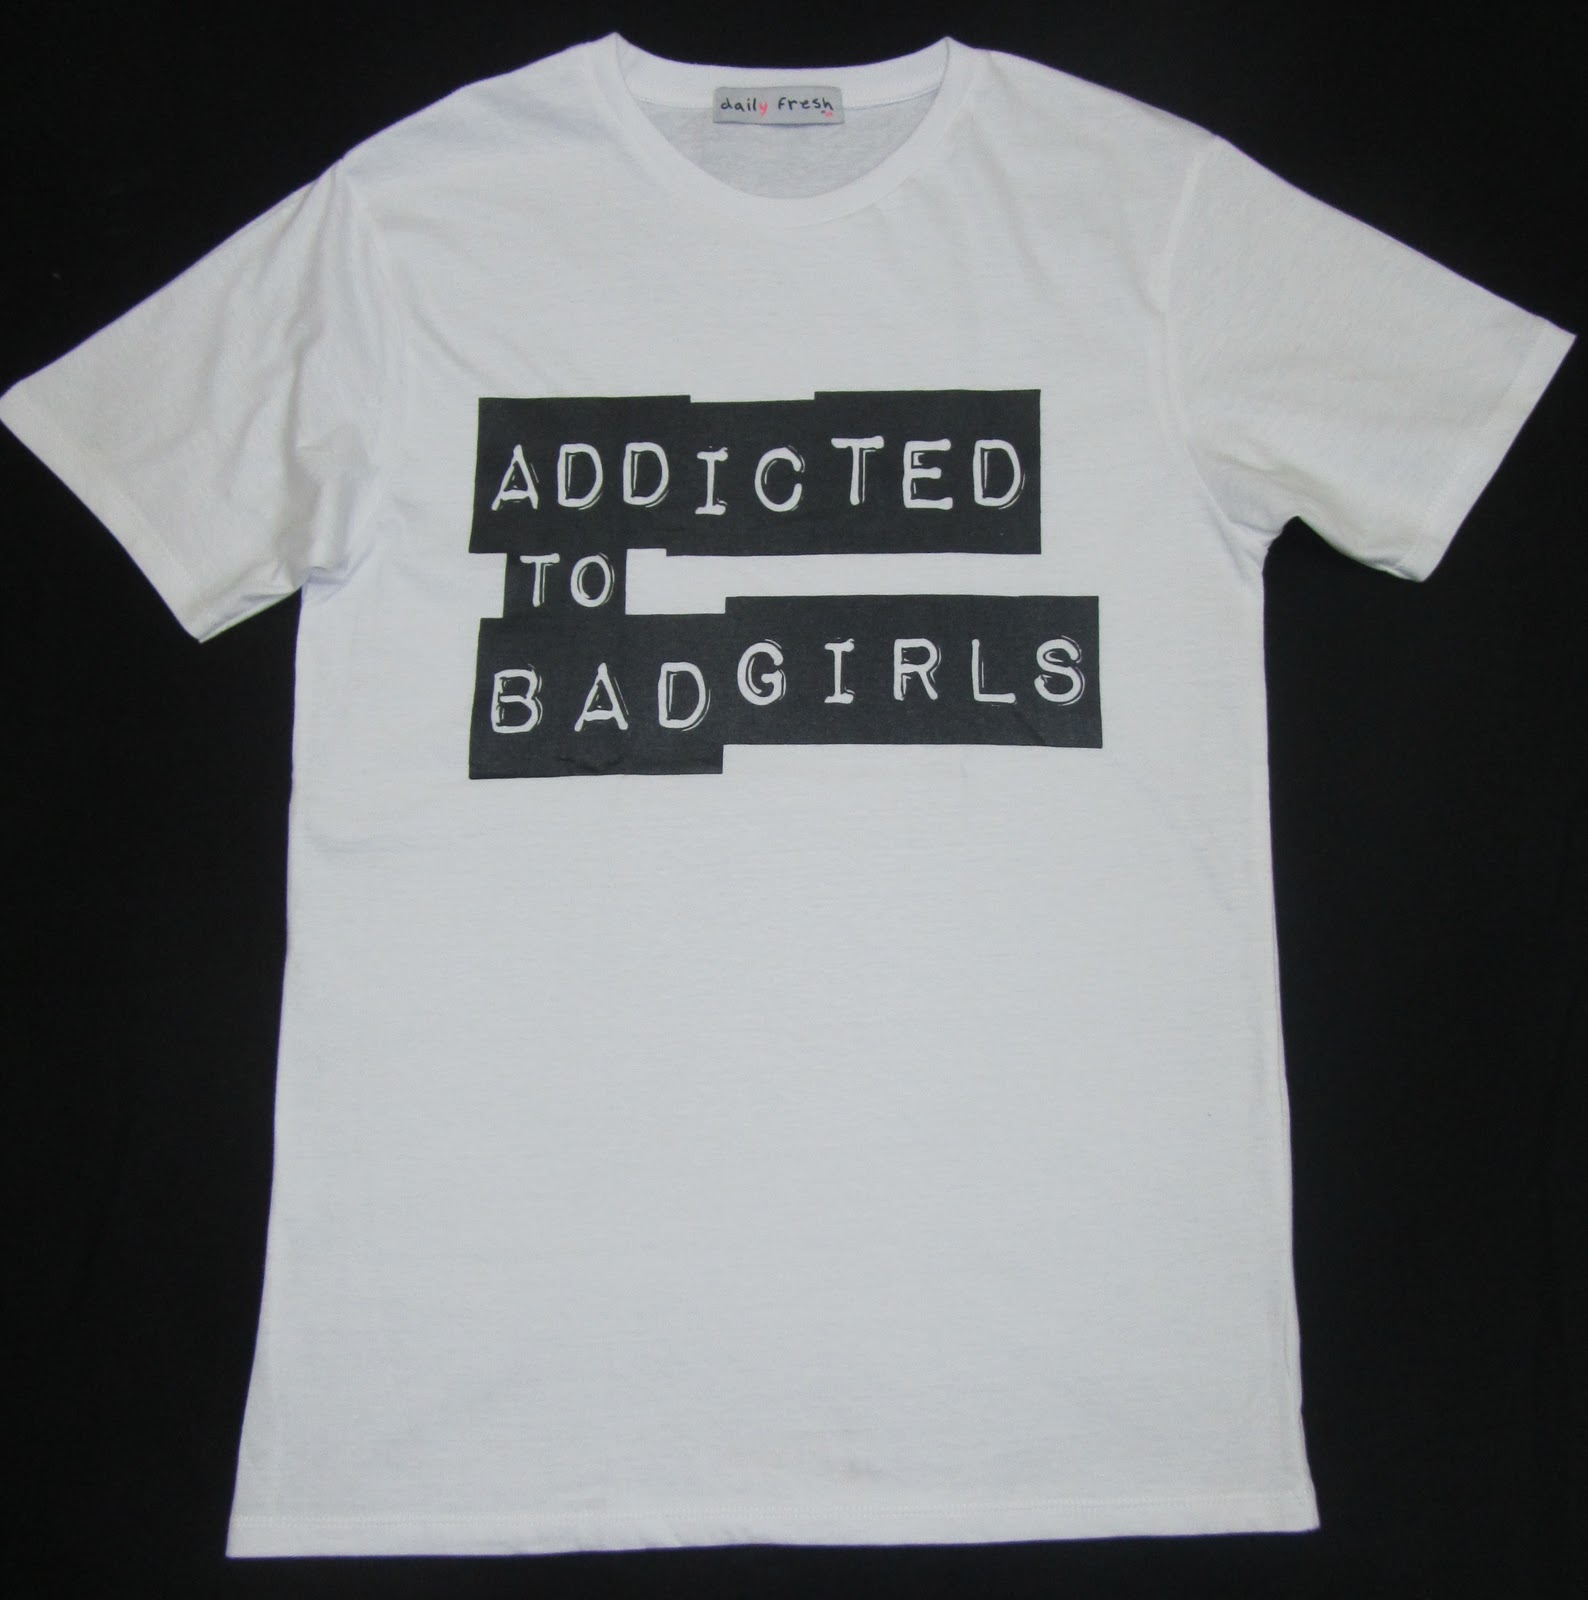 a9b9e6439 2printz: Addicted To Bad Boys/Girls T-Shirt special offer